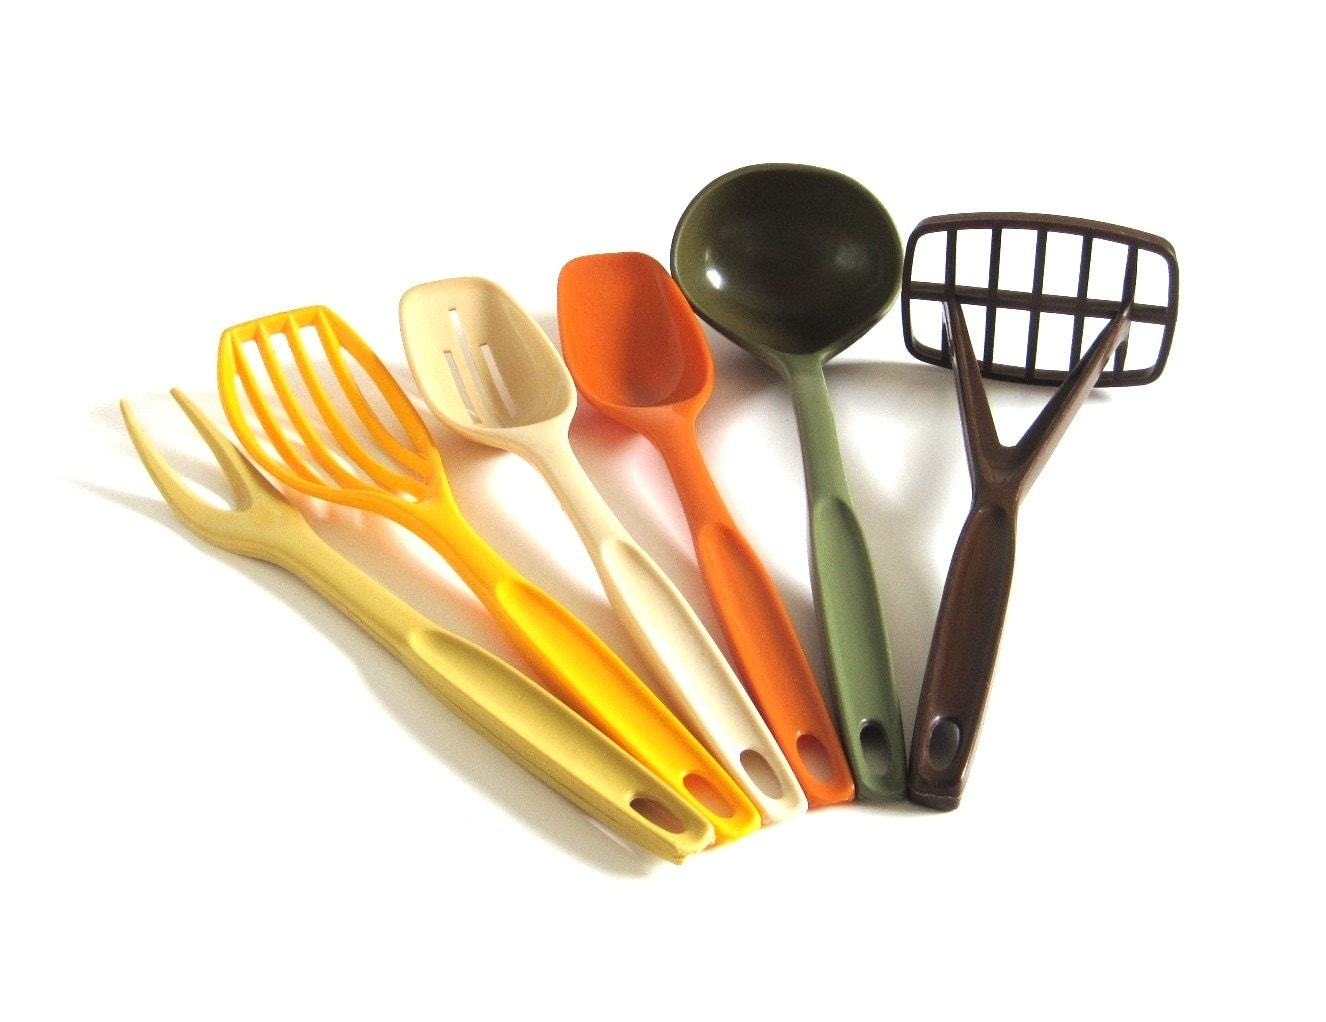 Nylon Plastic Foley Kitchen Utensils Set Ladle By .